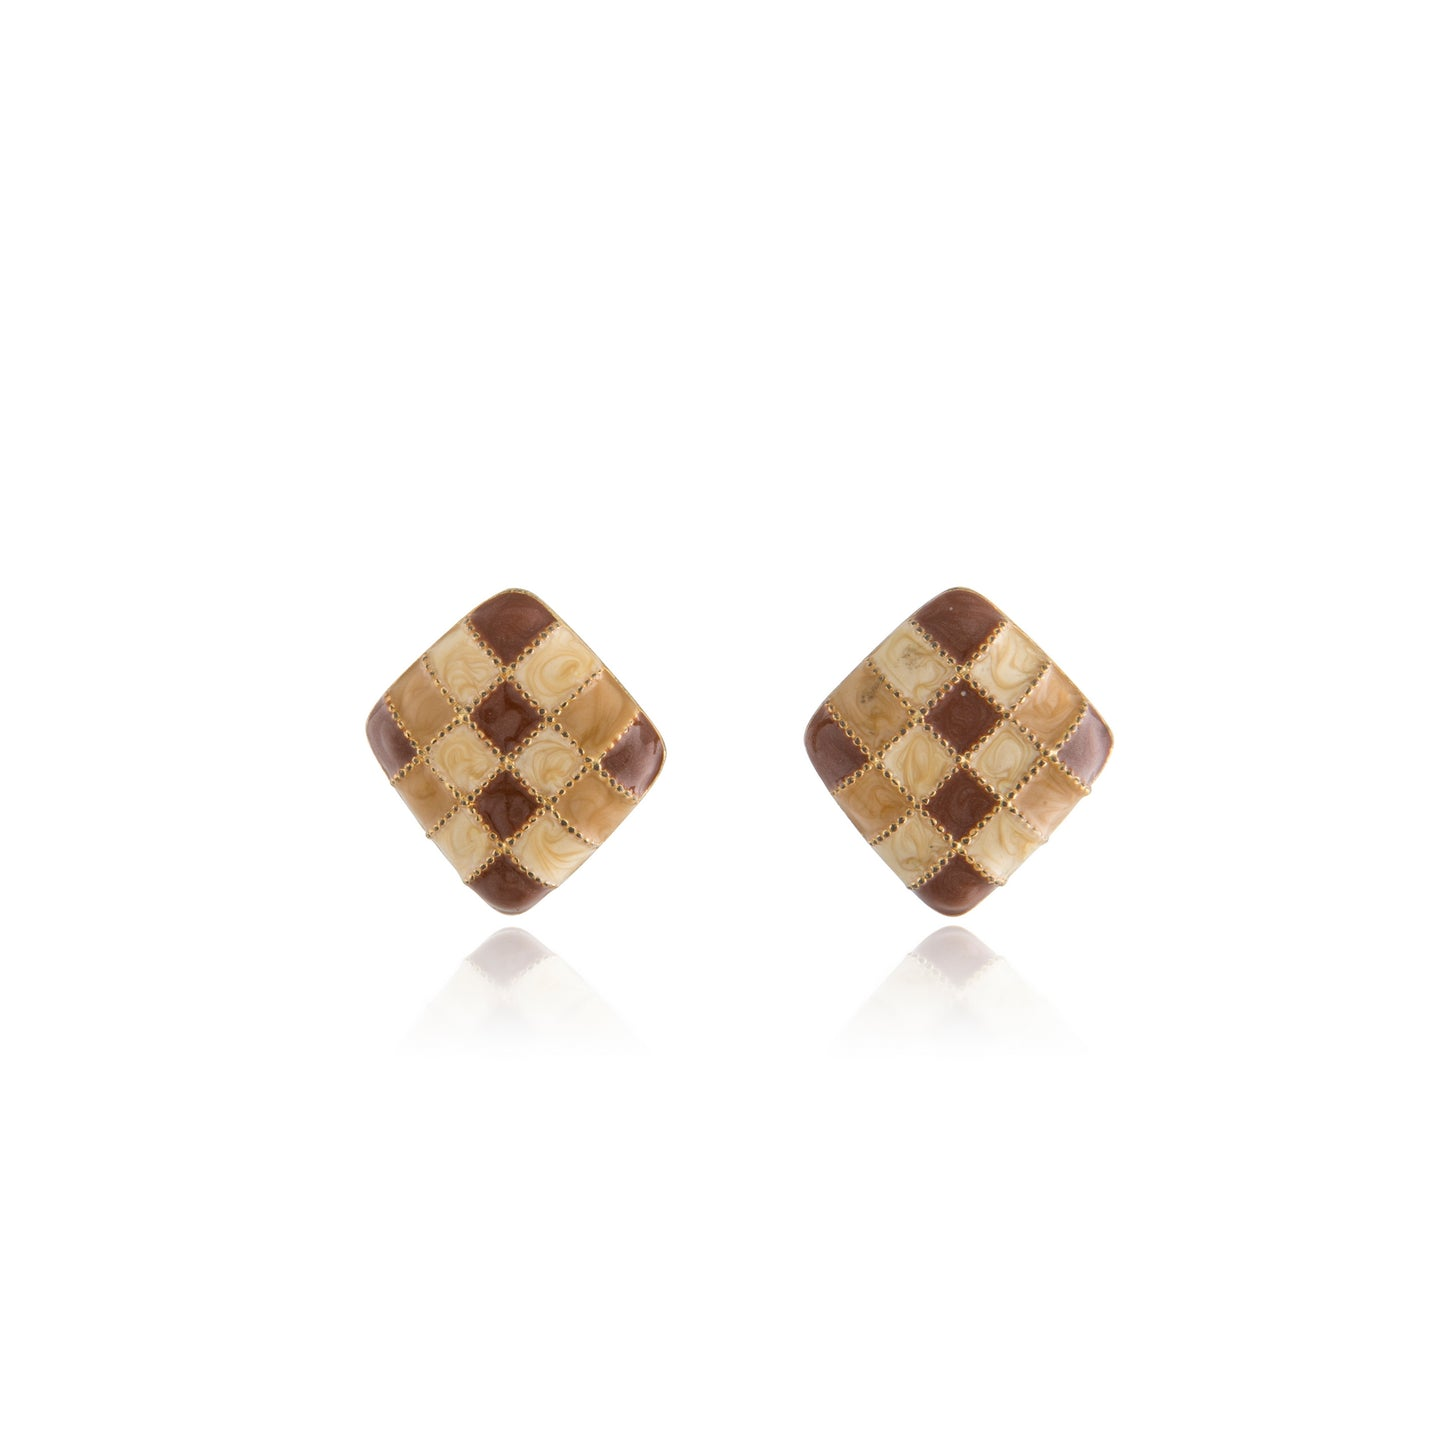 Vintage Brown Enamel Diamond Earrings